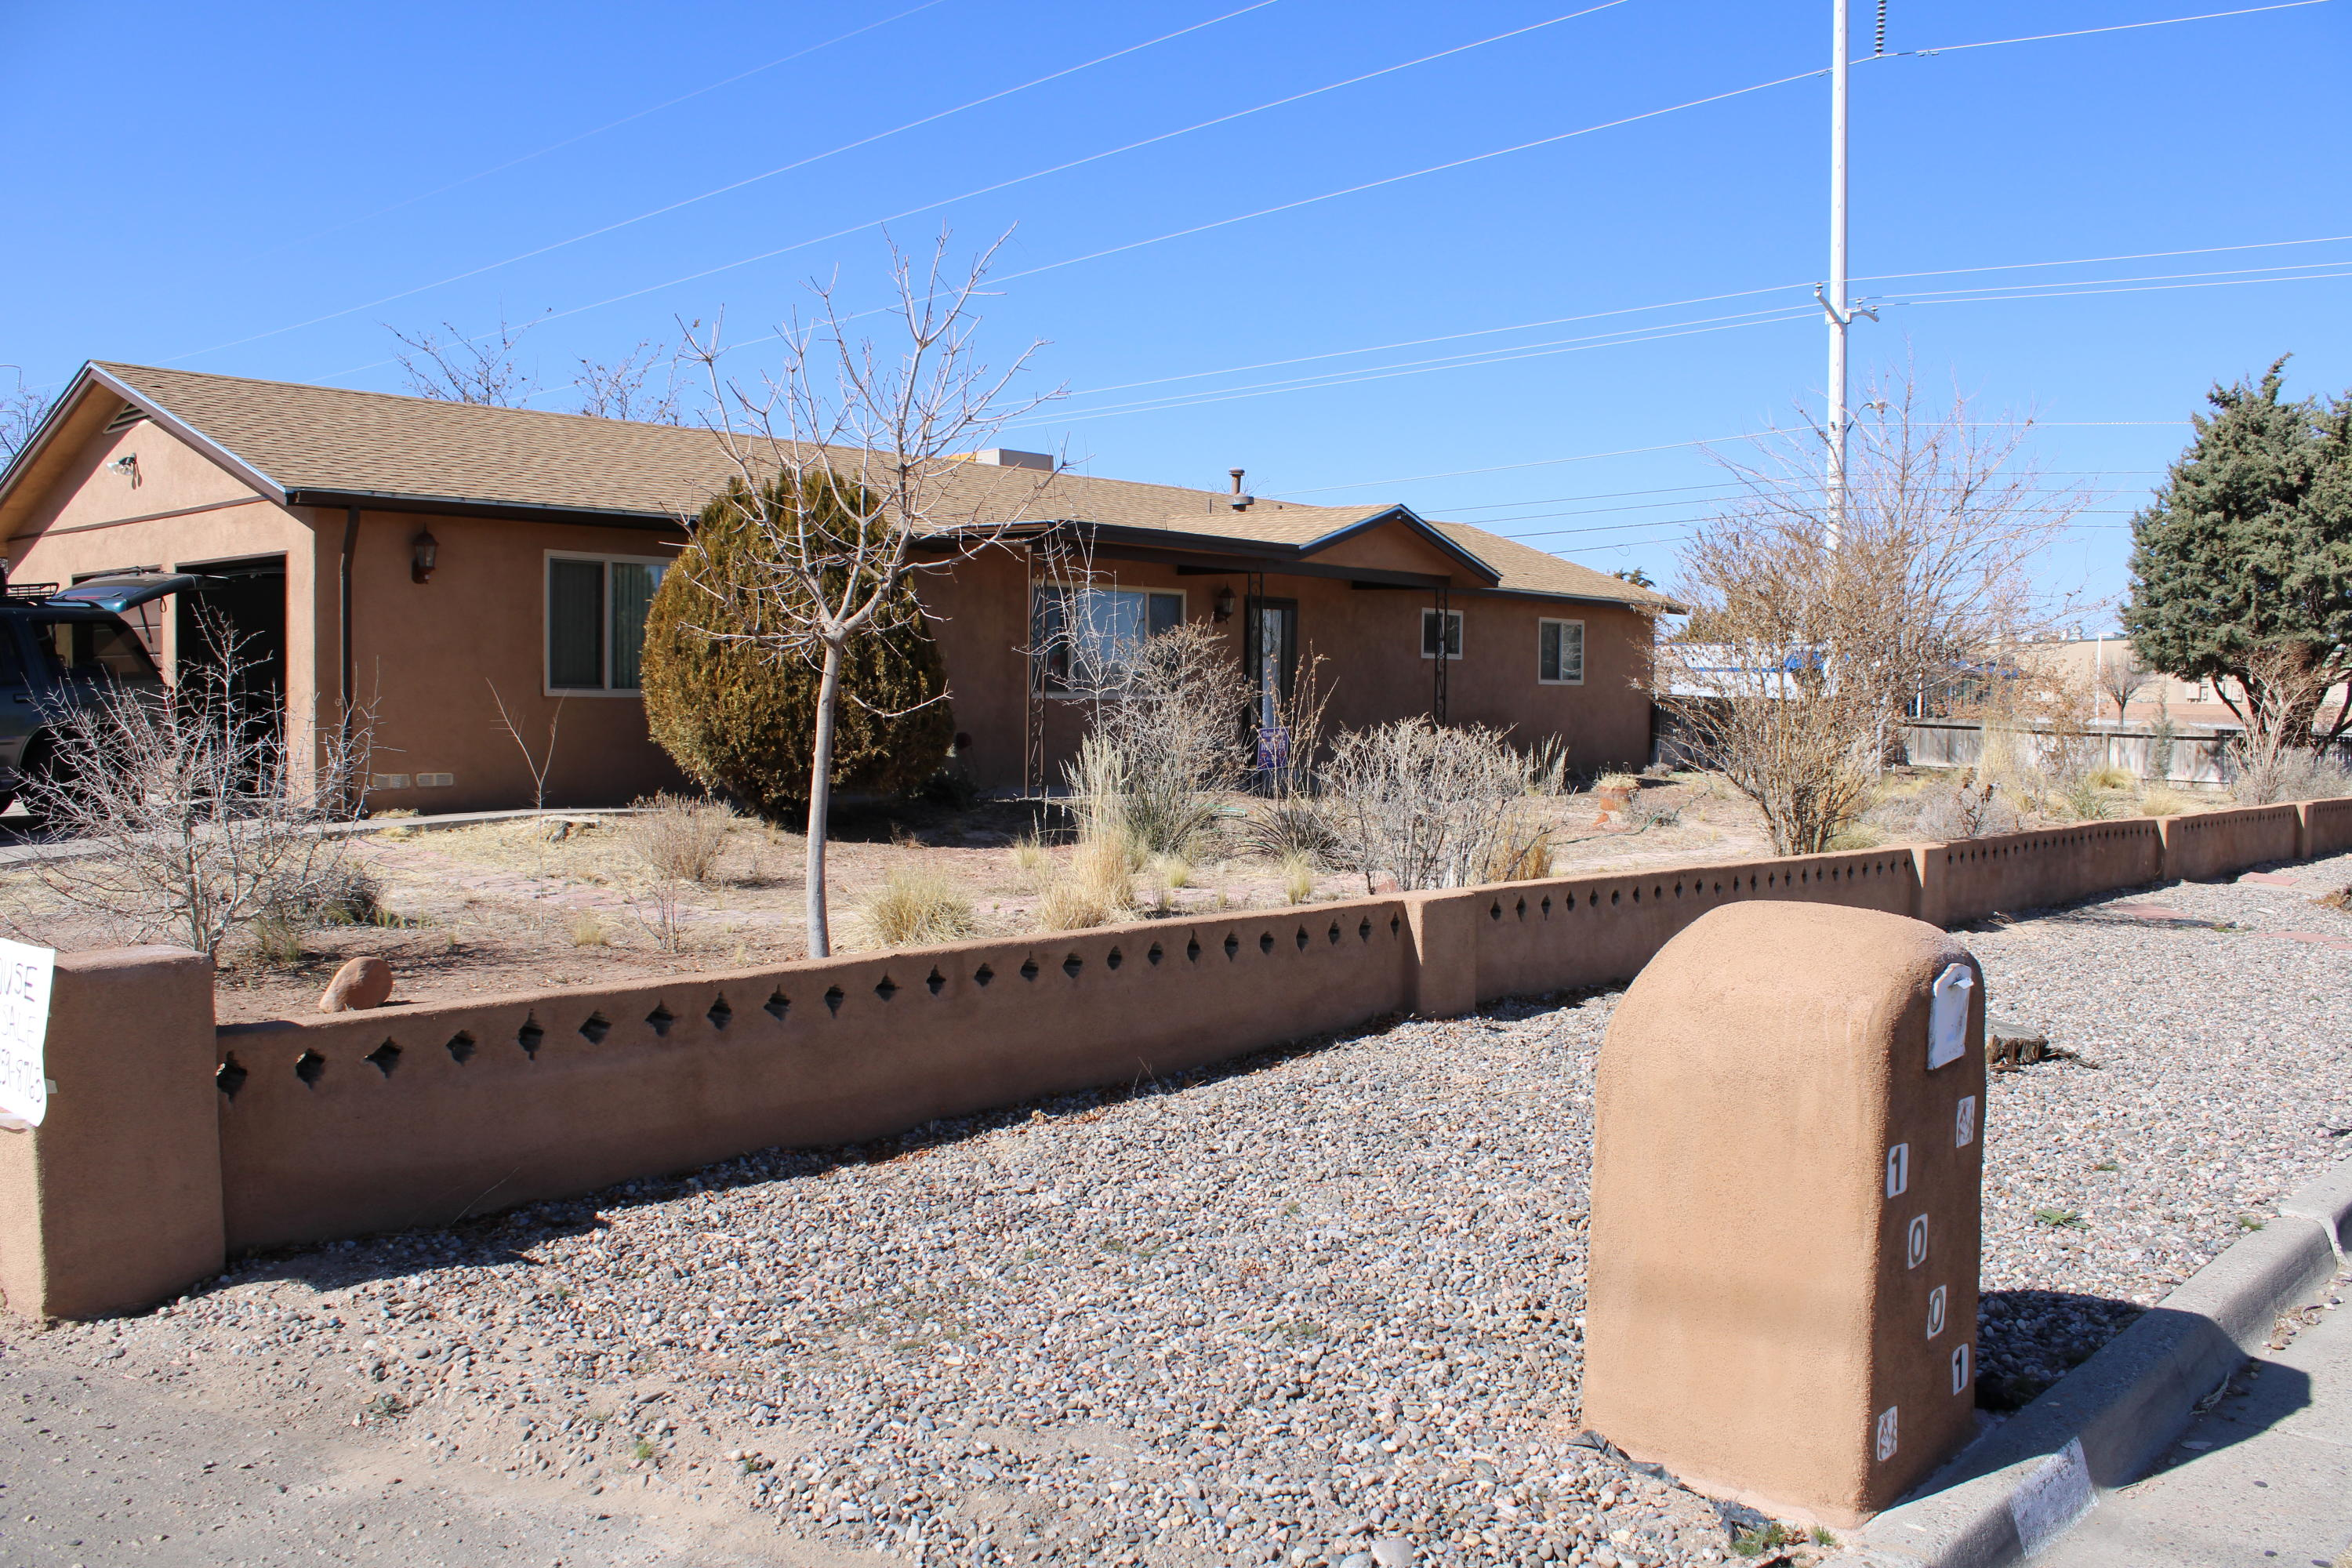 Located on a large corner lot, this lovely 3 bedroom home has a spacious living room and dining room. Kitchen has been remodeled with updated cabinets and refinished counter tops. Baths have been remodeled with updated fixtures, mirrors and vanities. Home has been recently painted and has new carpet. 300+ sqft finished, heated and cooled sunroom provides additional living space. Large 2-car garage is also heated and cooled. Long driveway could be extended to add room for RV or boat and access to backyard.